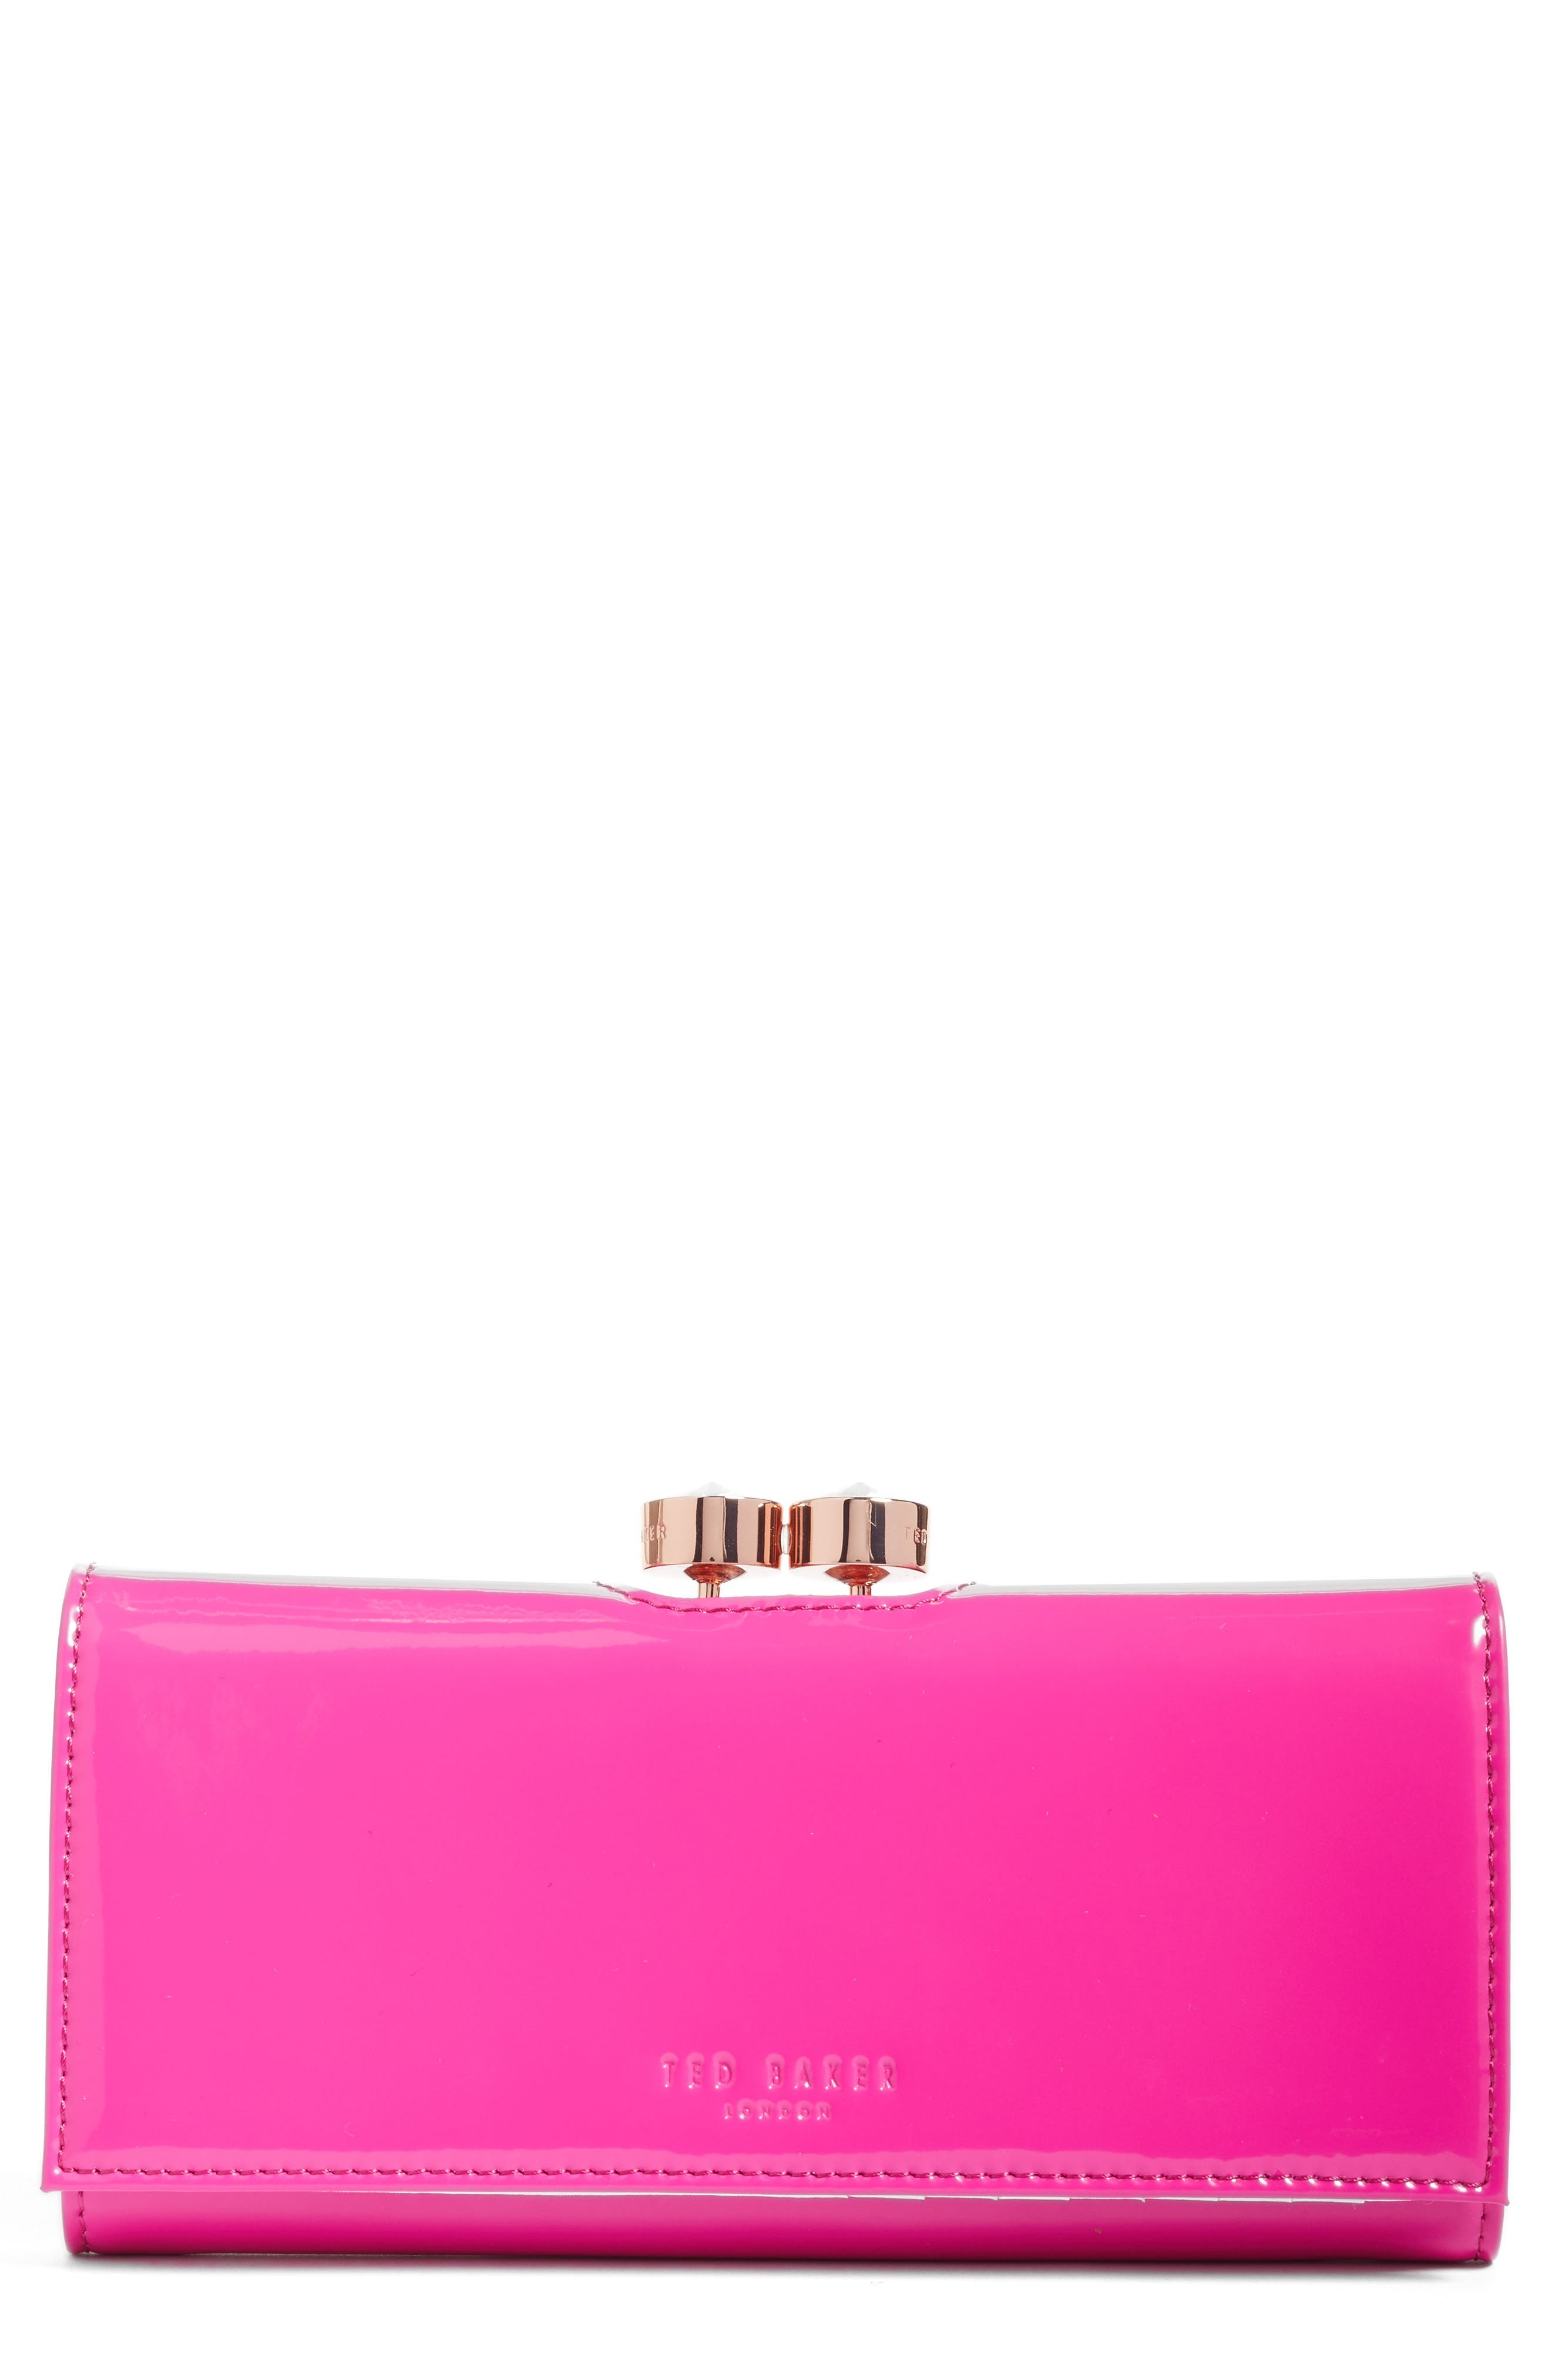 Alternate Image 1 Selected - Ted Baker London Merlow Leather Matinée Wallet (Nordstrom Exclusive)